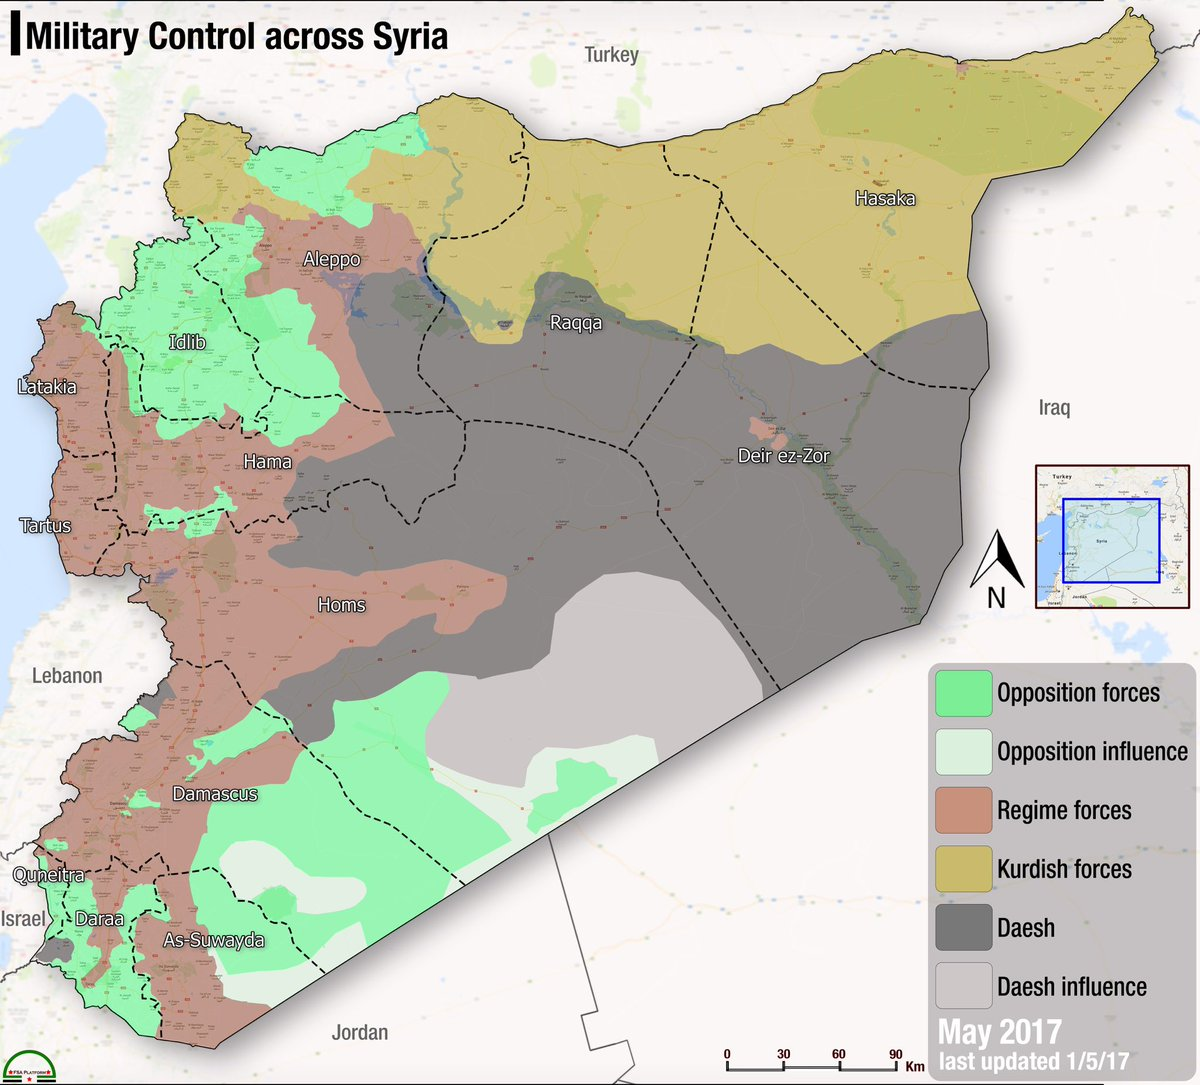 fsa news on twitter new map syria military control across syria at the start of may 2017